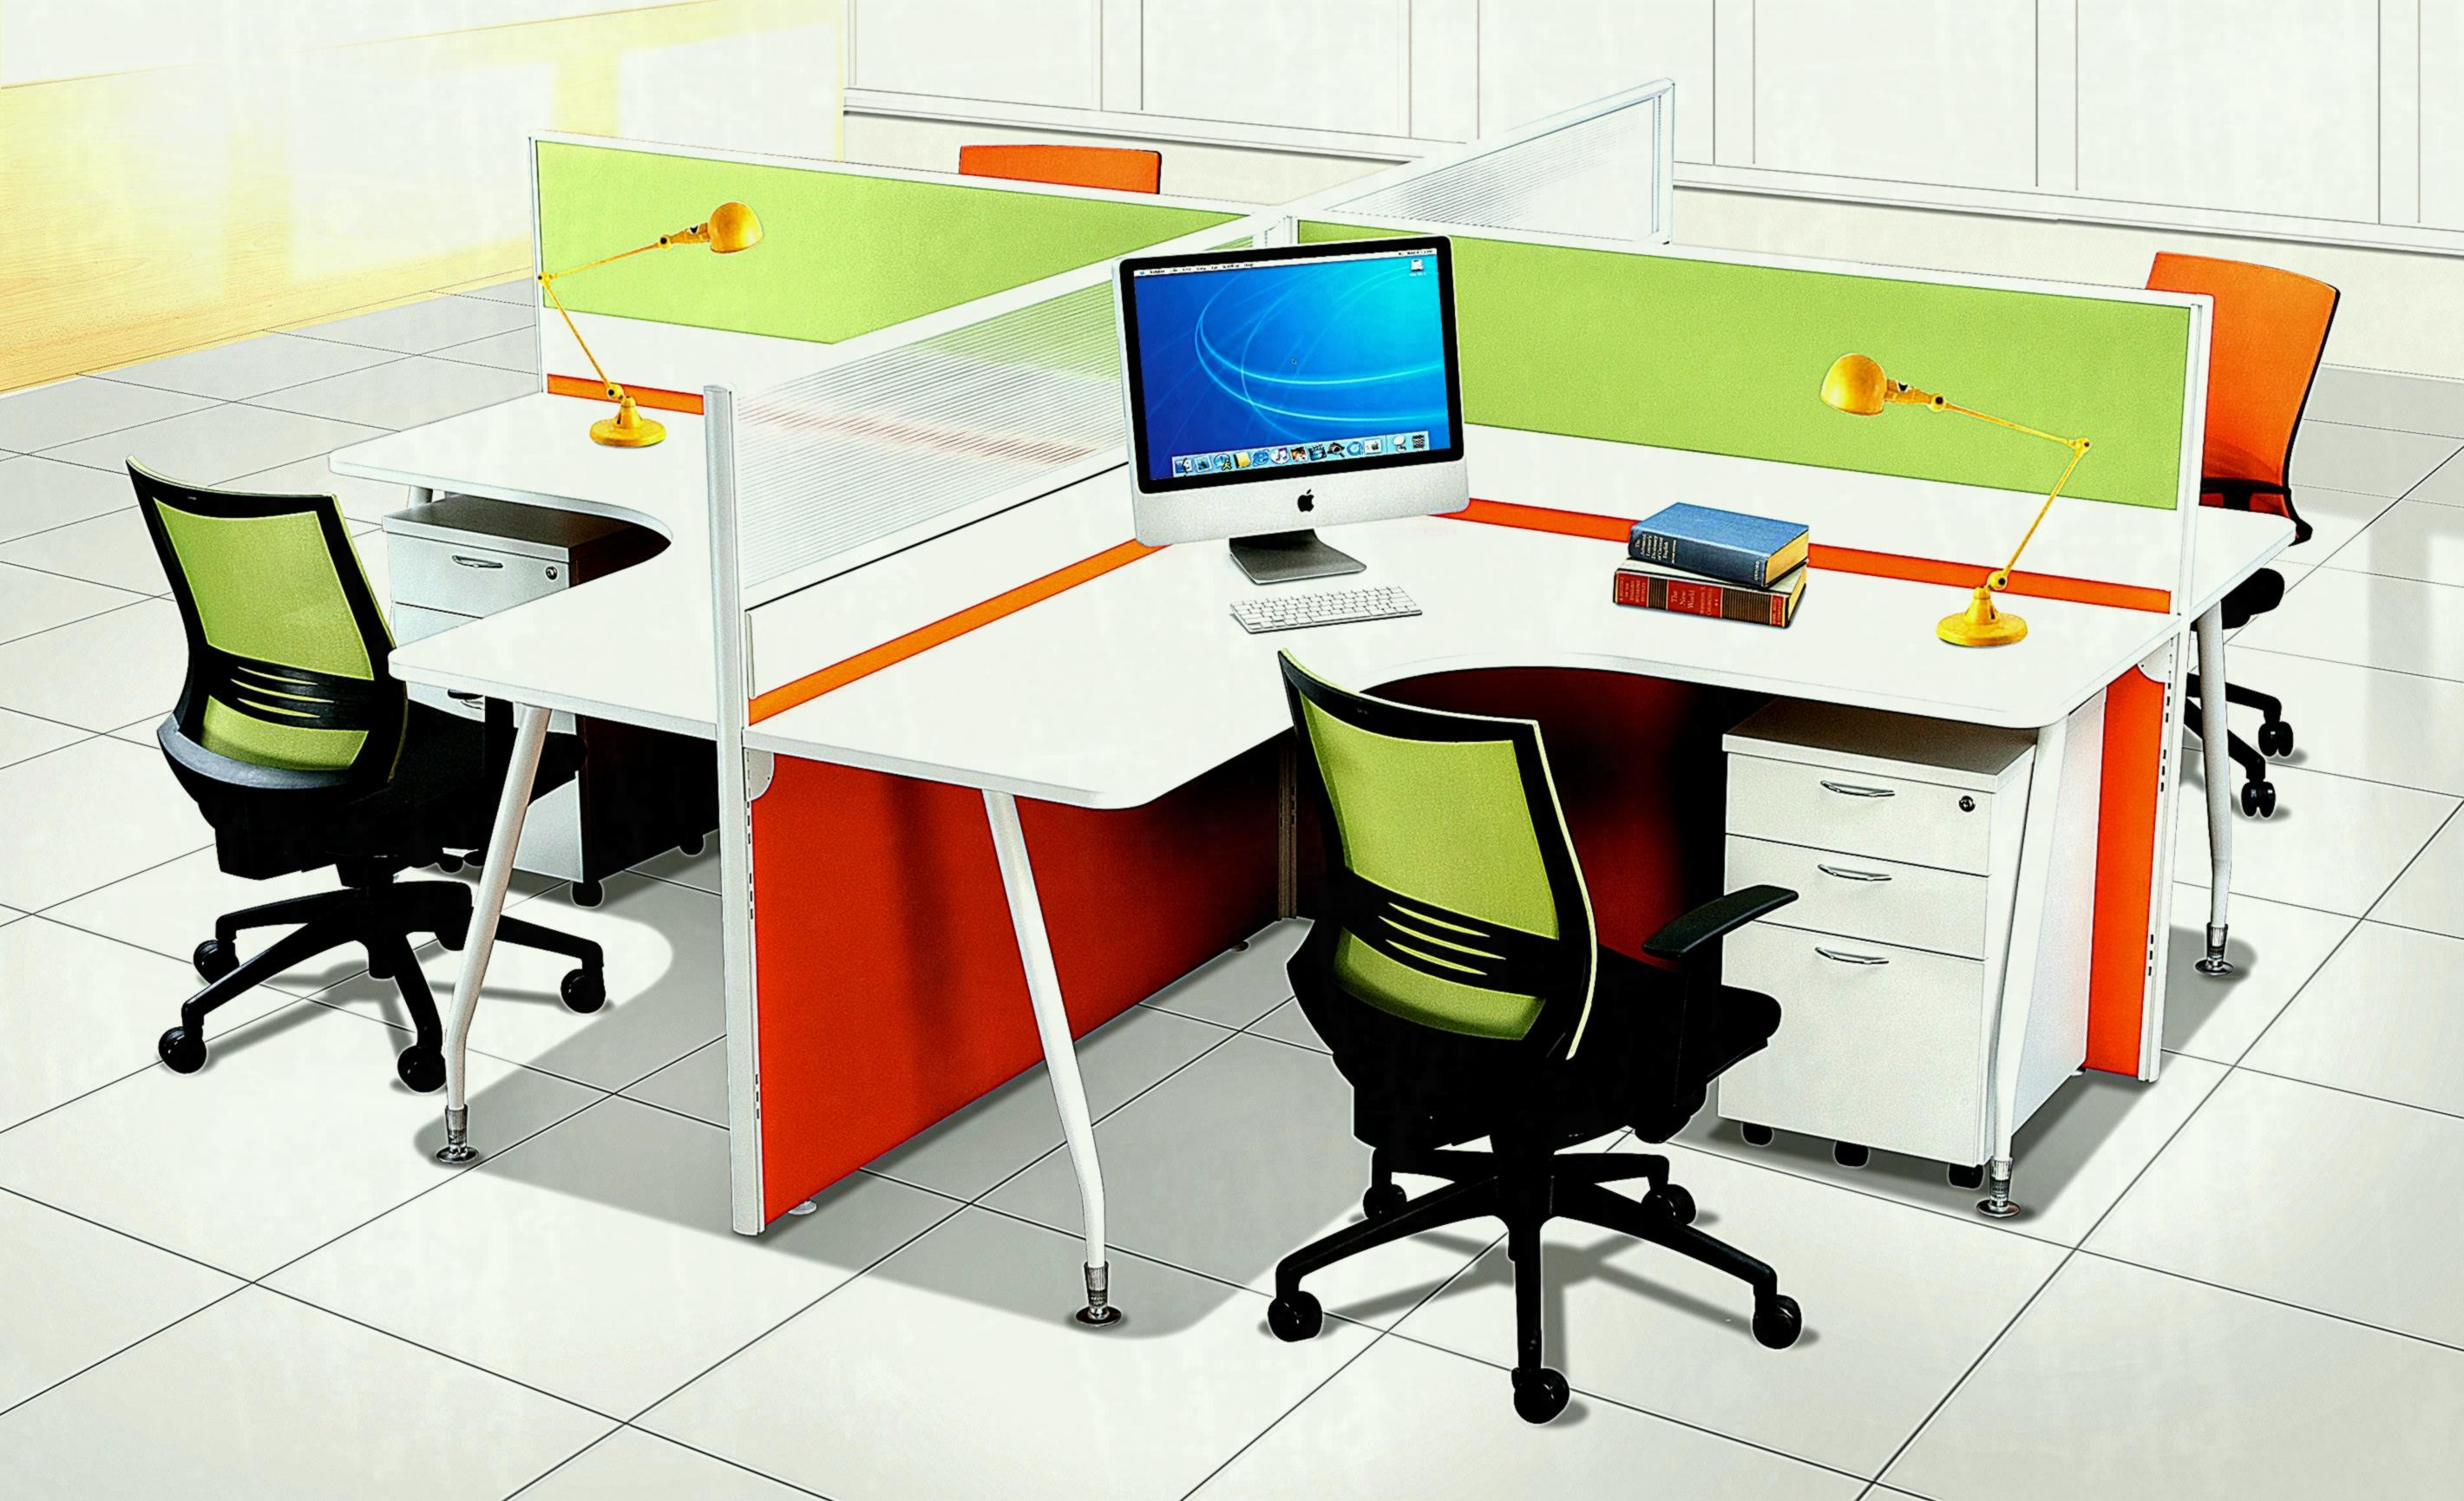 2840x1730 Modular Office Furniture Wallpaper Hd Photos W R Download